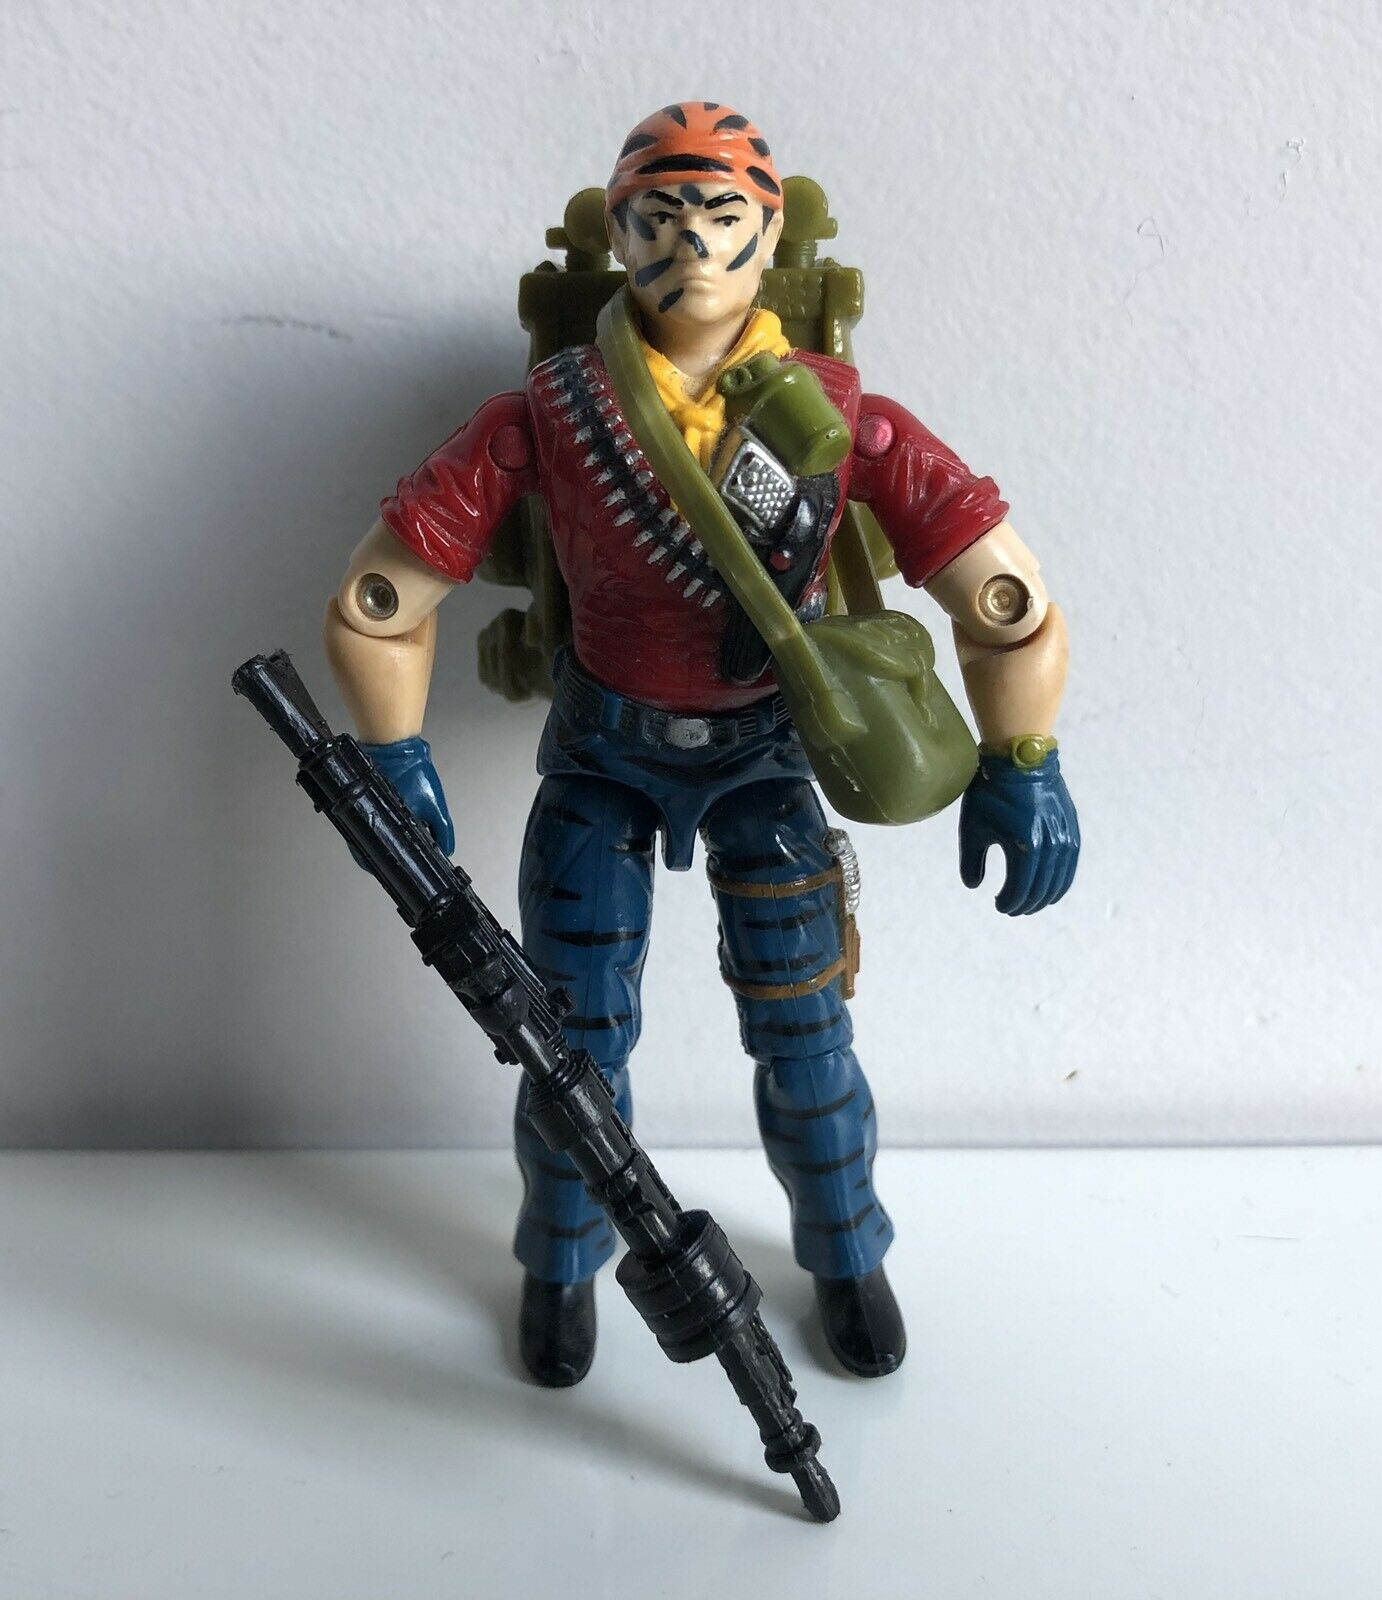 GI JOE TUNNELRAT TIGER FORCE 100% COMPLETE C9+ EURO REPAINT RARE